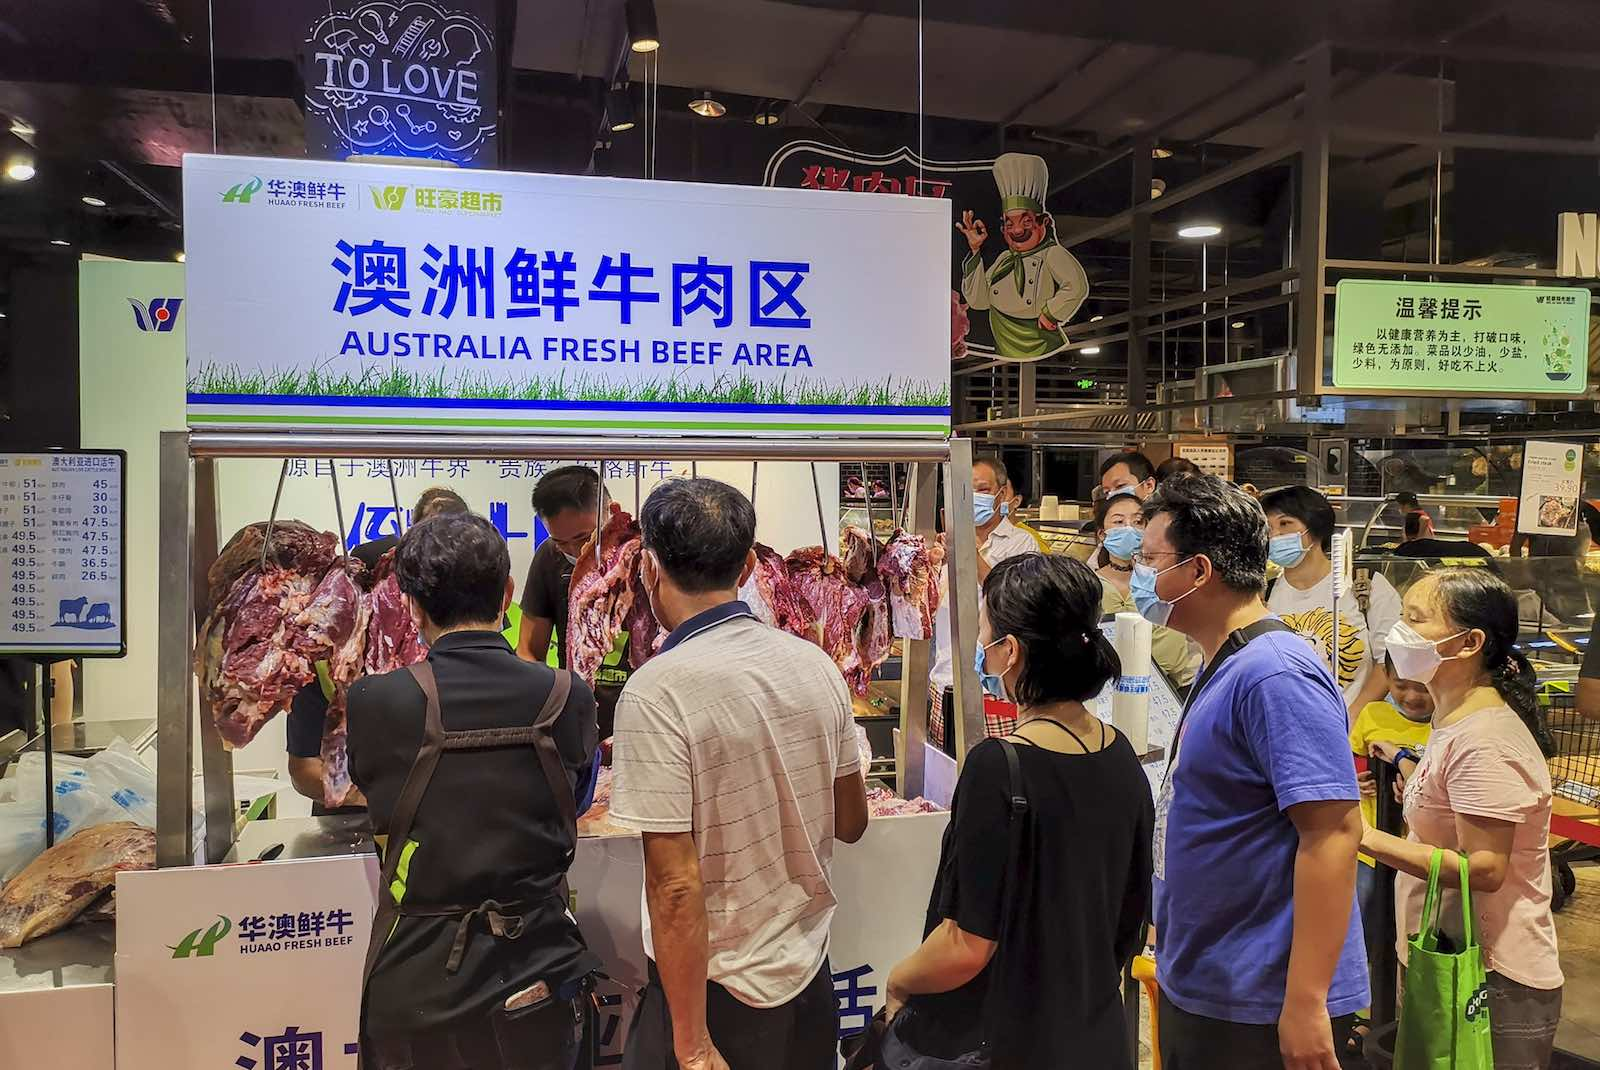 A supermarket selling Australian beef in Haikou, China, 4 July 2020 (Yang Xu/China News Service via Getty Images)